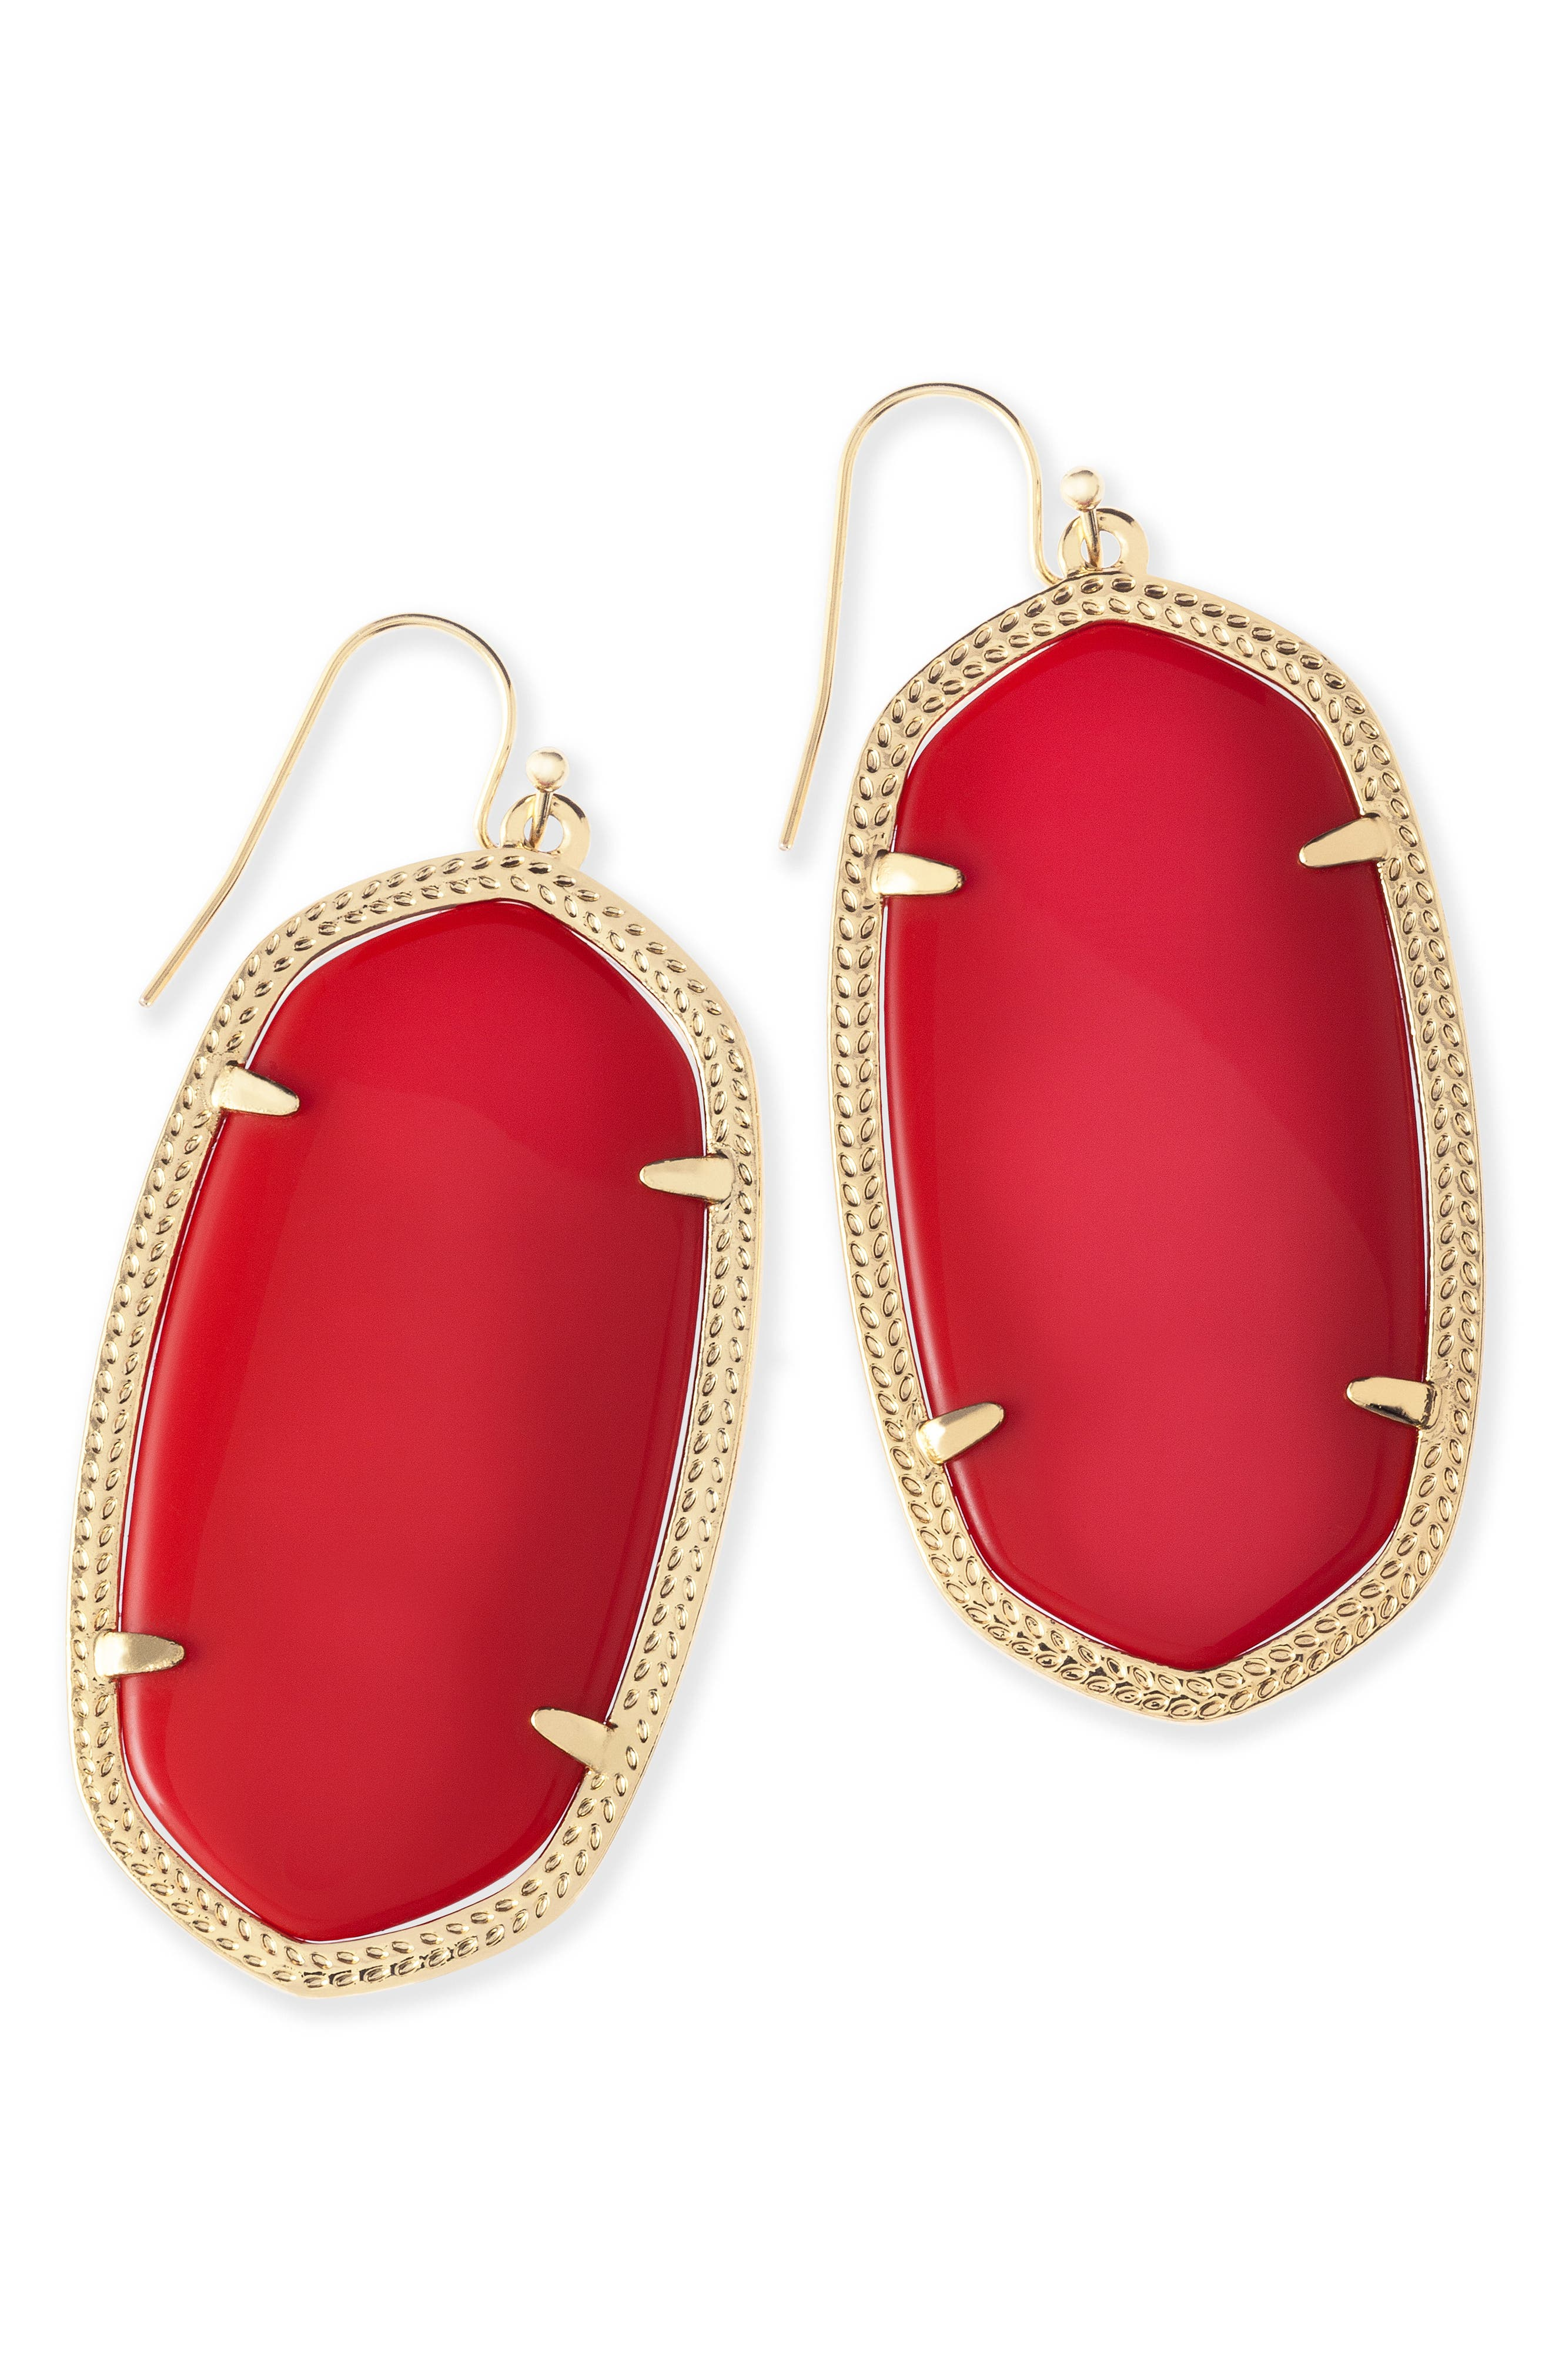 Danielle - Large Oval Statement Earrings,                             Alternate thumbnail 208, color,